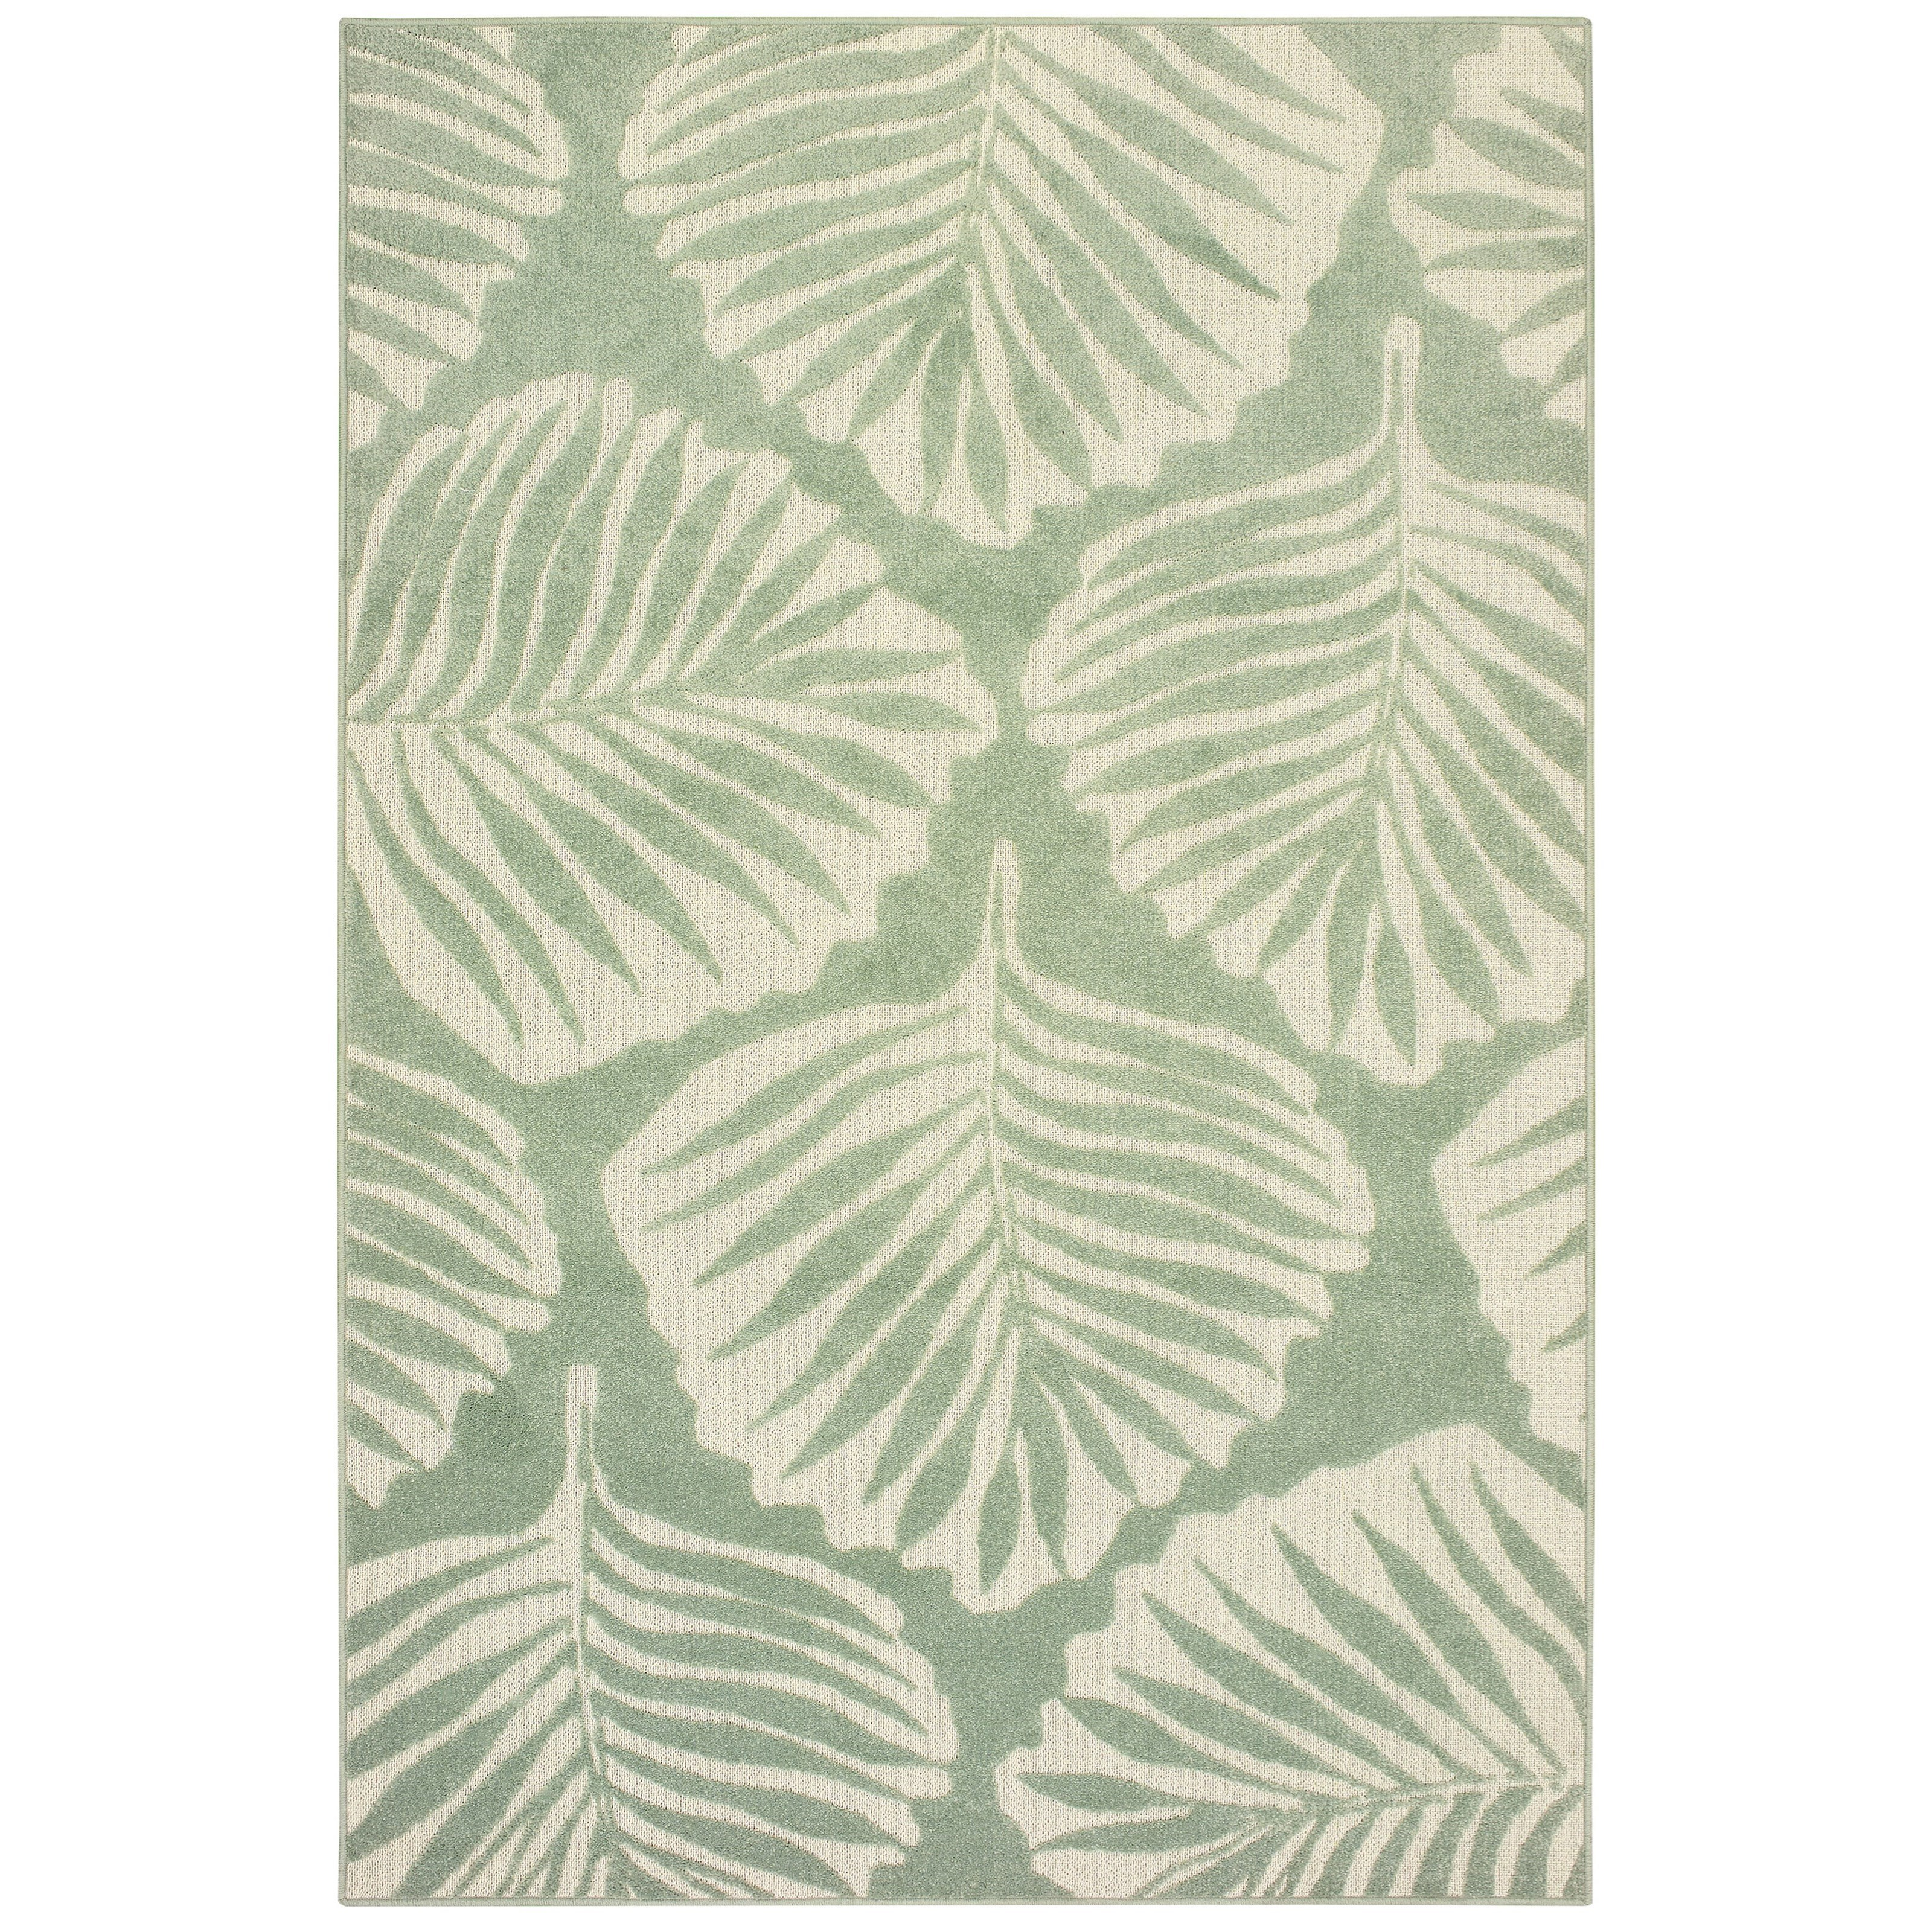 "Barbados 5' 3"" X  7' 6"" Rectangle Rug by Oriental Weavers at Furniture Superstore - Rochester, MN"